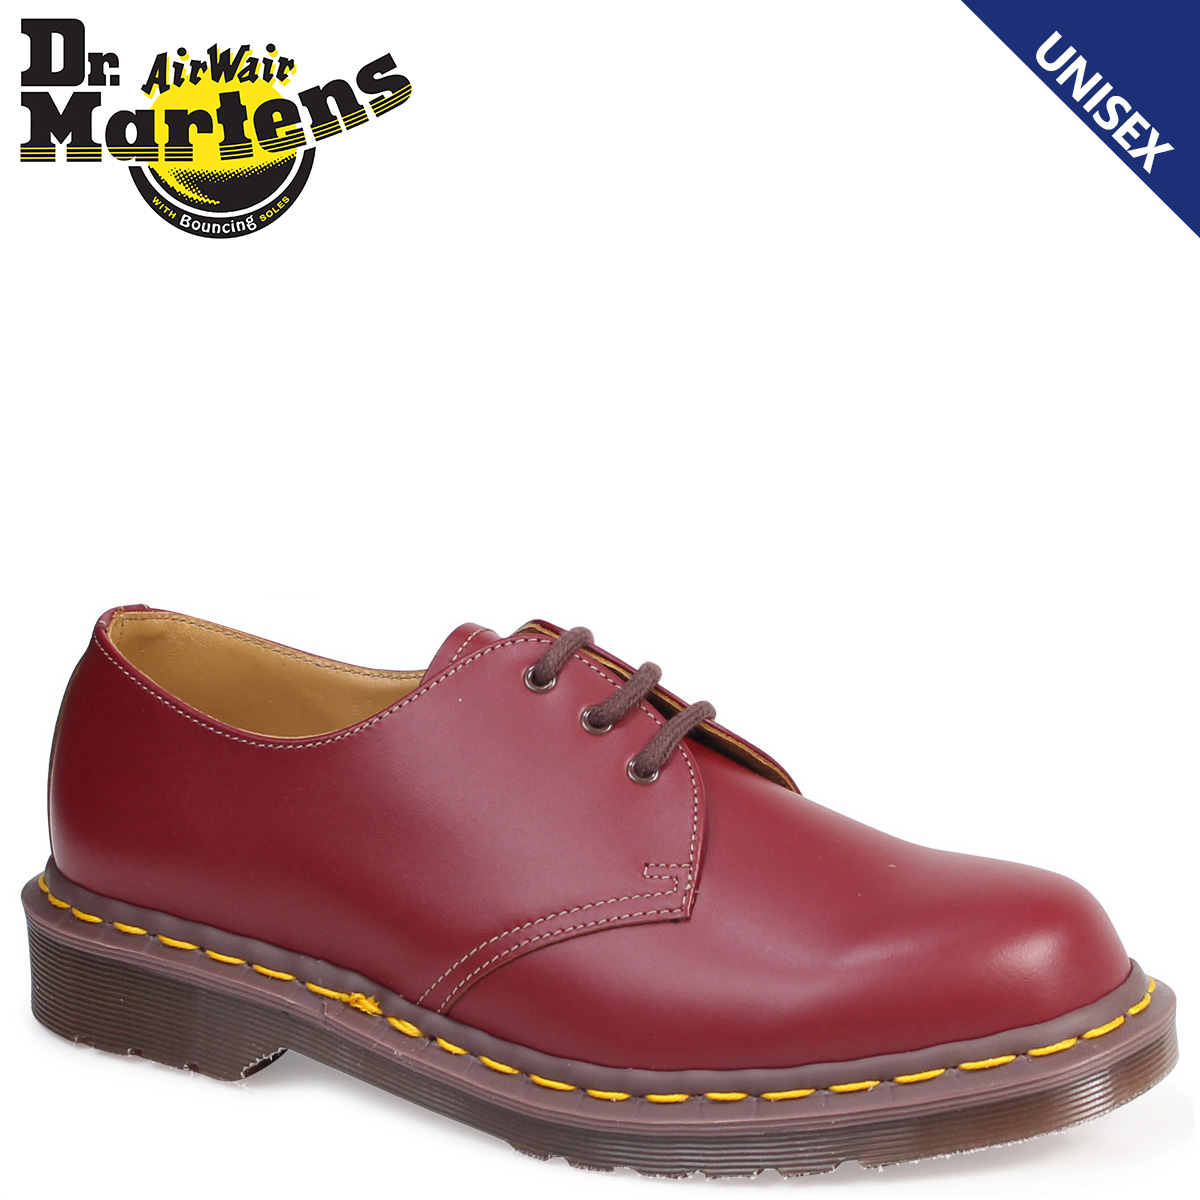 335cf4247ae Dr.Martens 3 hall 1461 men's lady's doctor Martin shoes VINTAGE 3EYE SHOE  MADE IN ENGLAND R12877601 wine red red